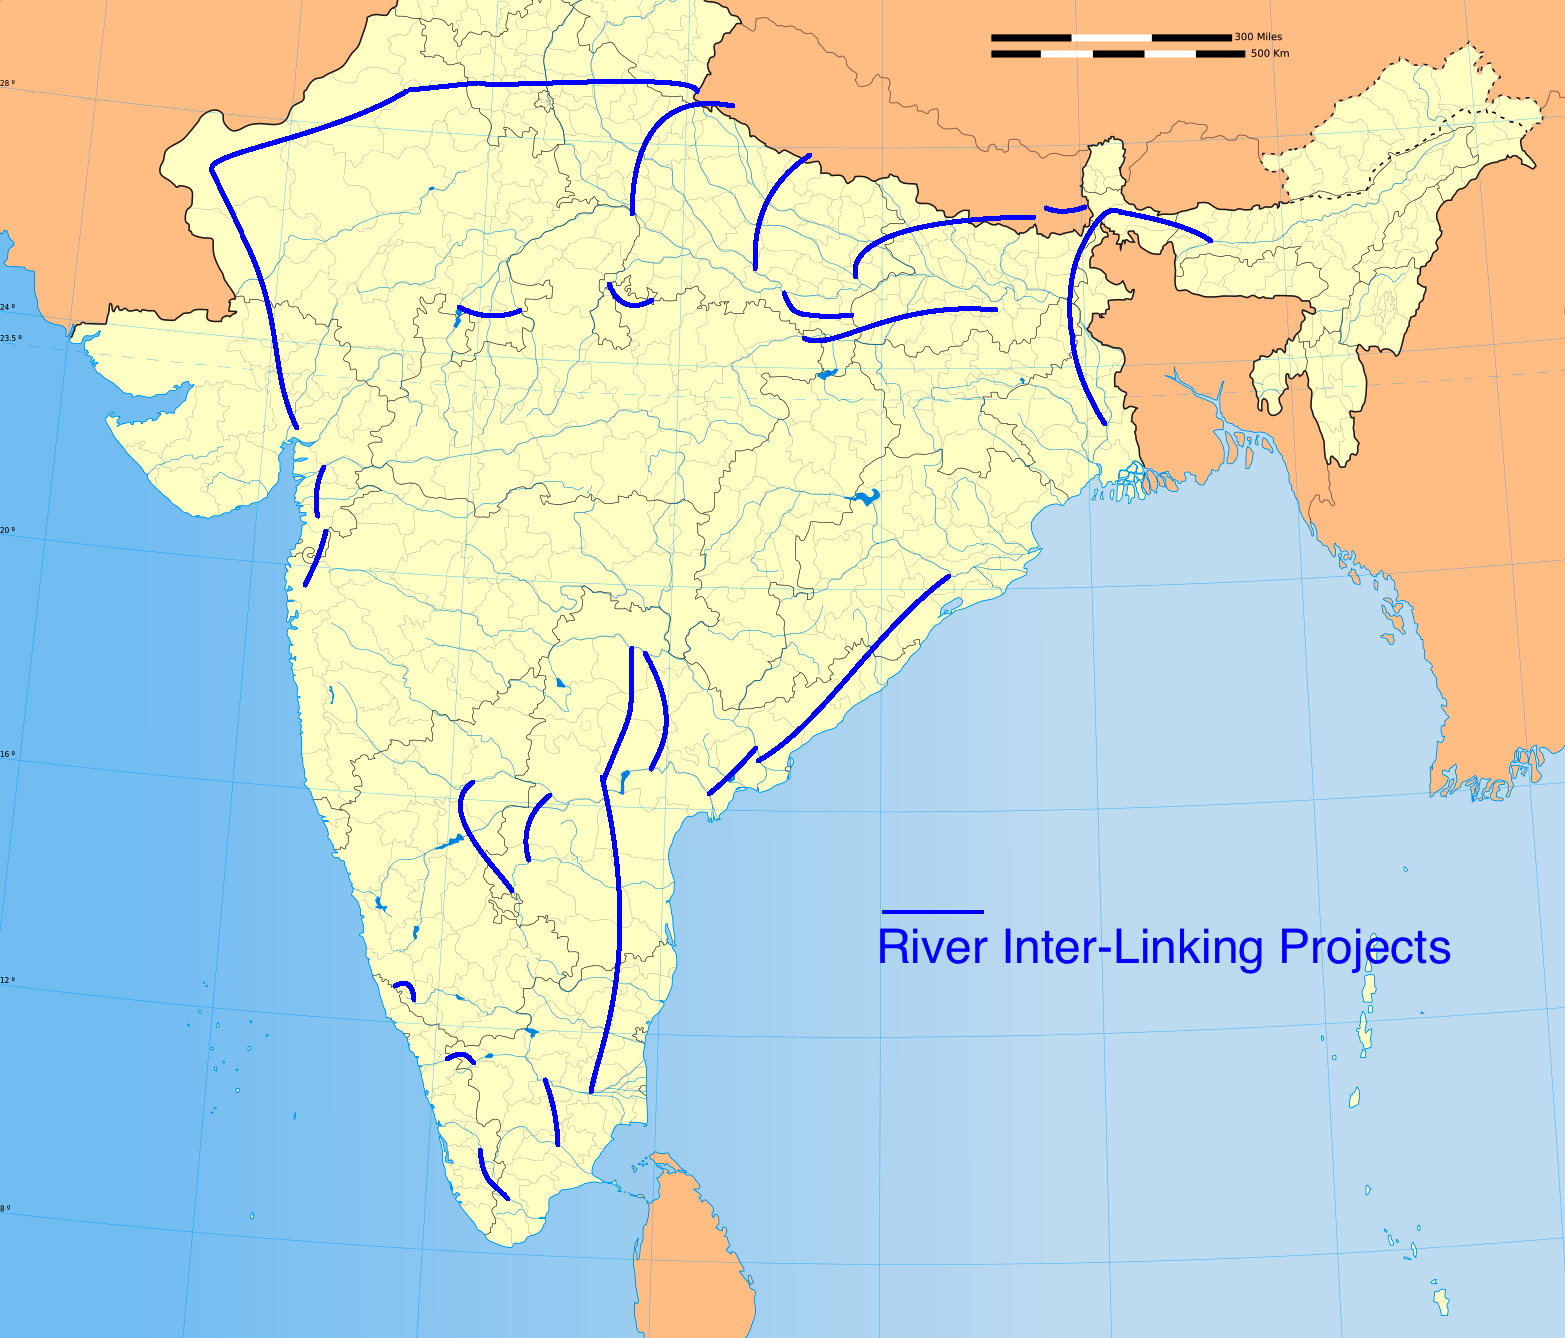 Indian Rivers Inter-link - Wikipedia on map of mauritius rivers, india outline map with rivers, map of japan, map of italy rivers, map of brahmaputra river, map of indiana rivers, map of usa rivers, map of algeria rivers, us map w rivers, map of the godavari river, map of yemen rivers, map of rivers in colombia, map of asia, map of south korea rivers, map of southeast us rivers, map of european countries and rivers, map of the main rivers, map of laos rivers, map of england with rivers and mountains,